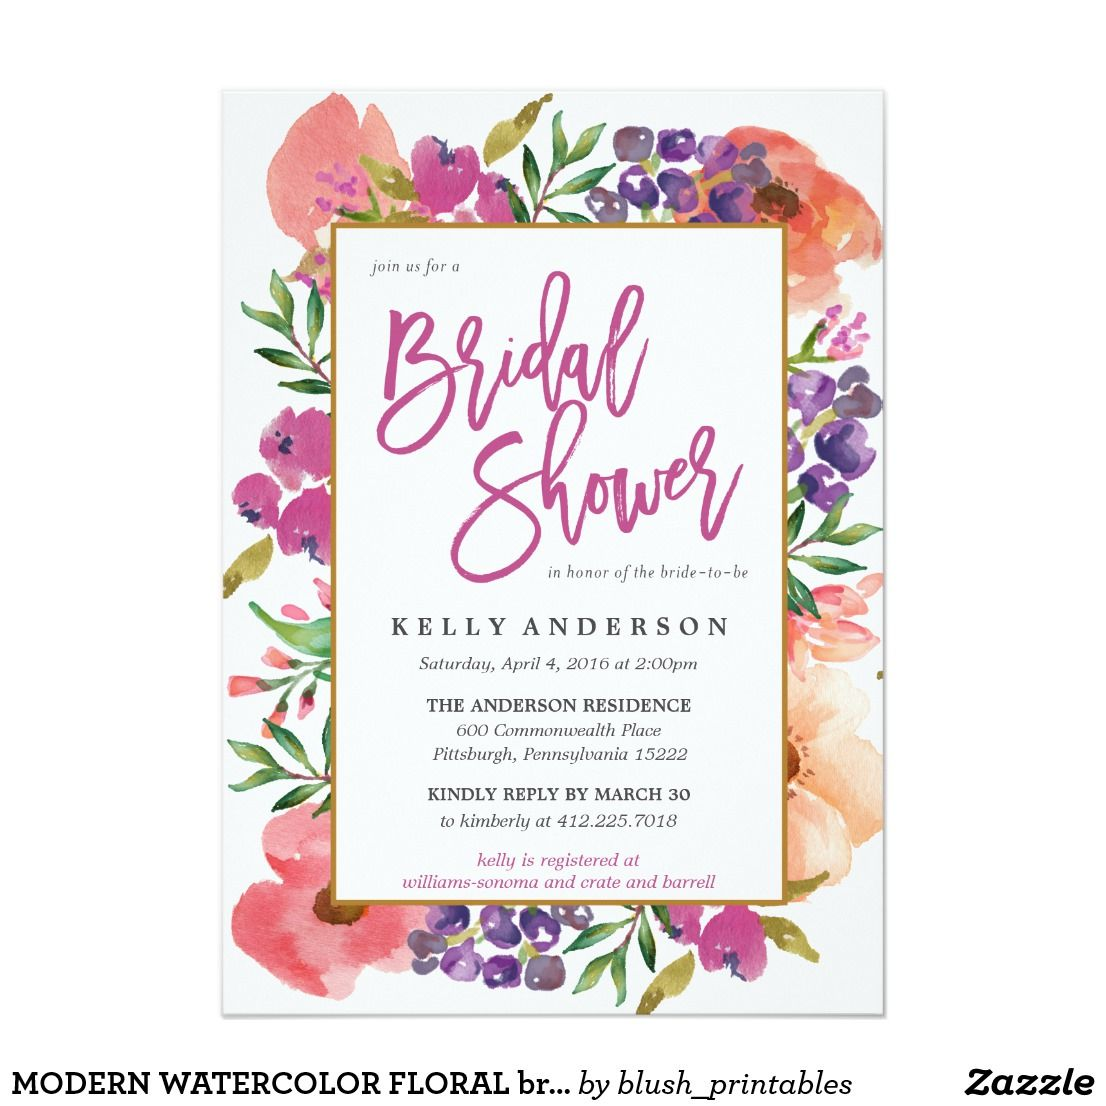 modern watercolor floral bridal shower invitation fun wedding invites customize these invitations for your weddings invitations invites weddings